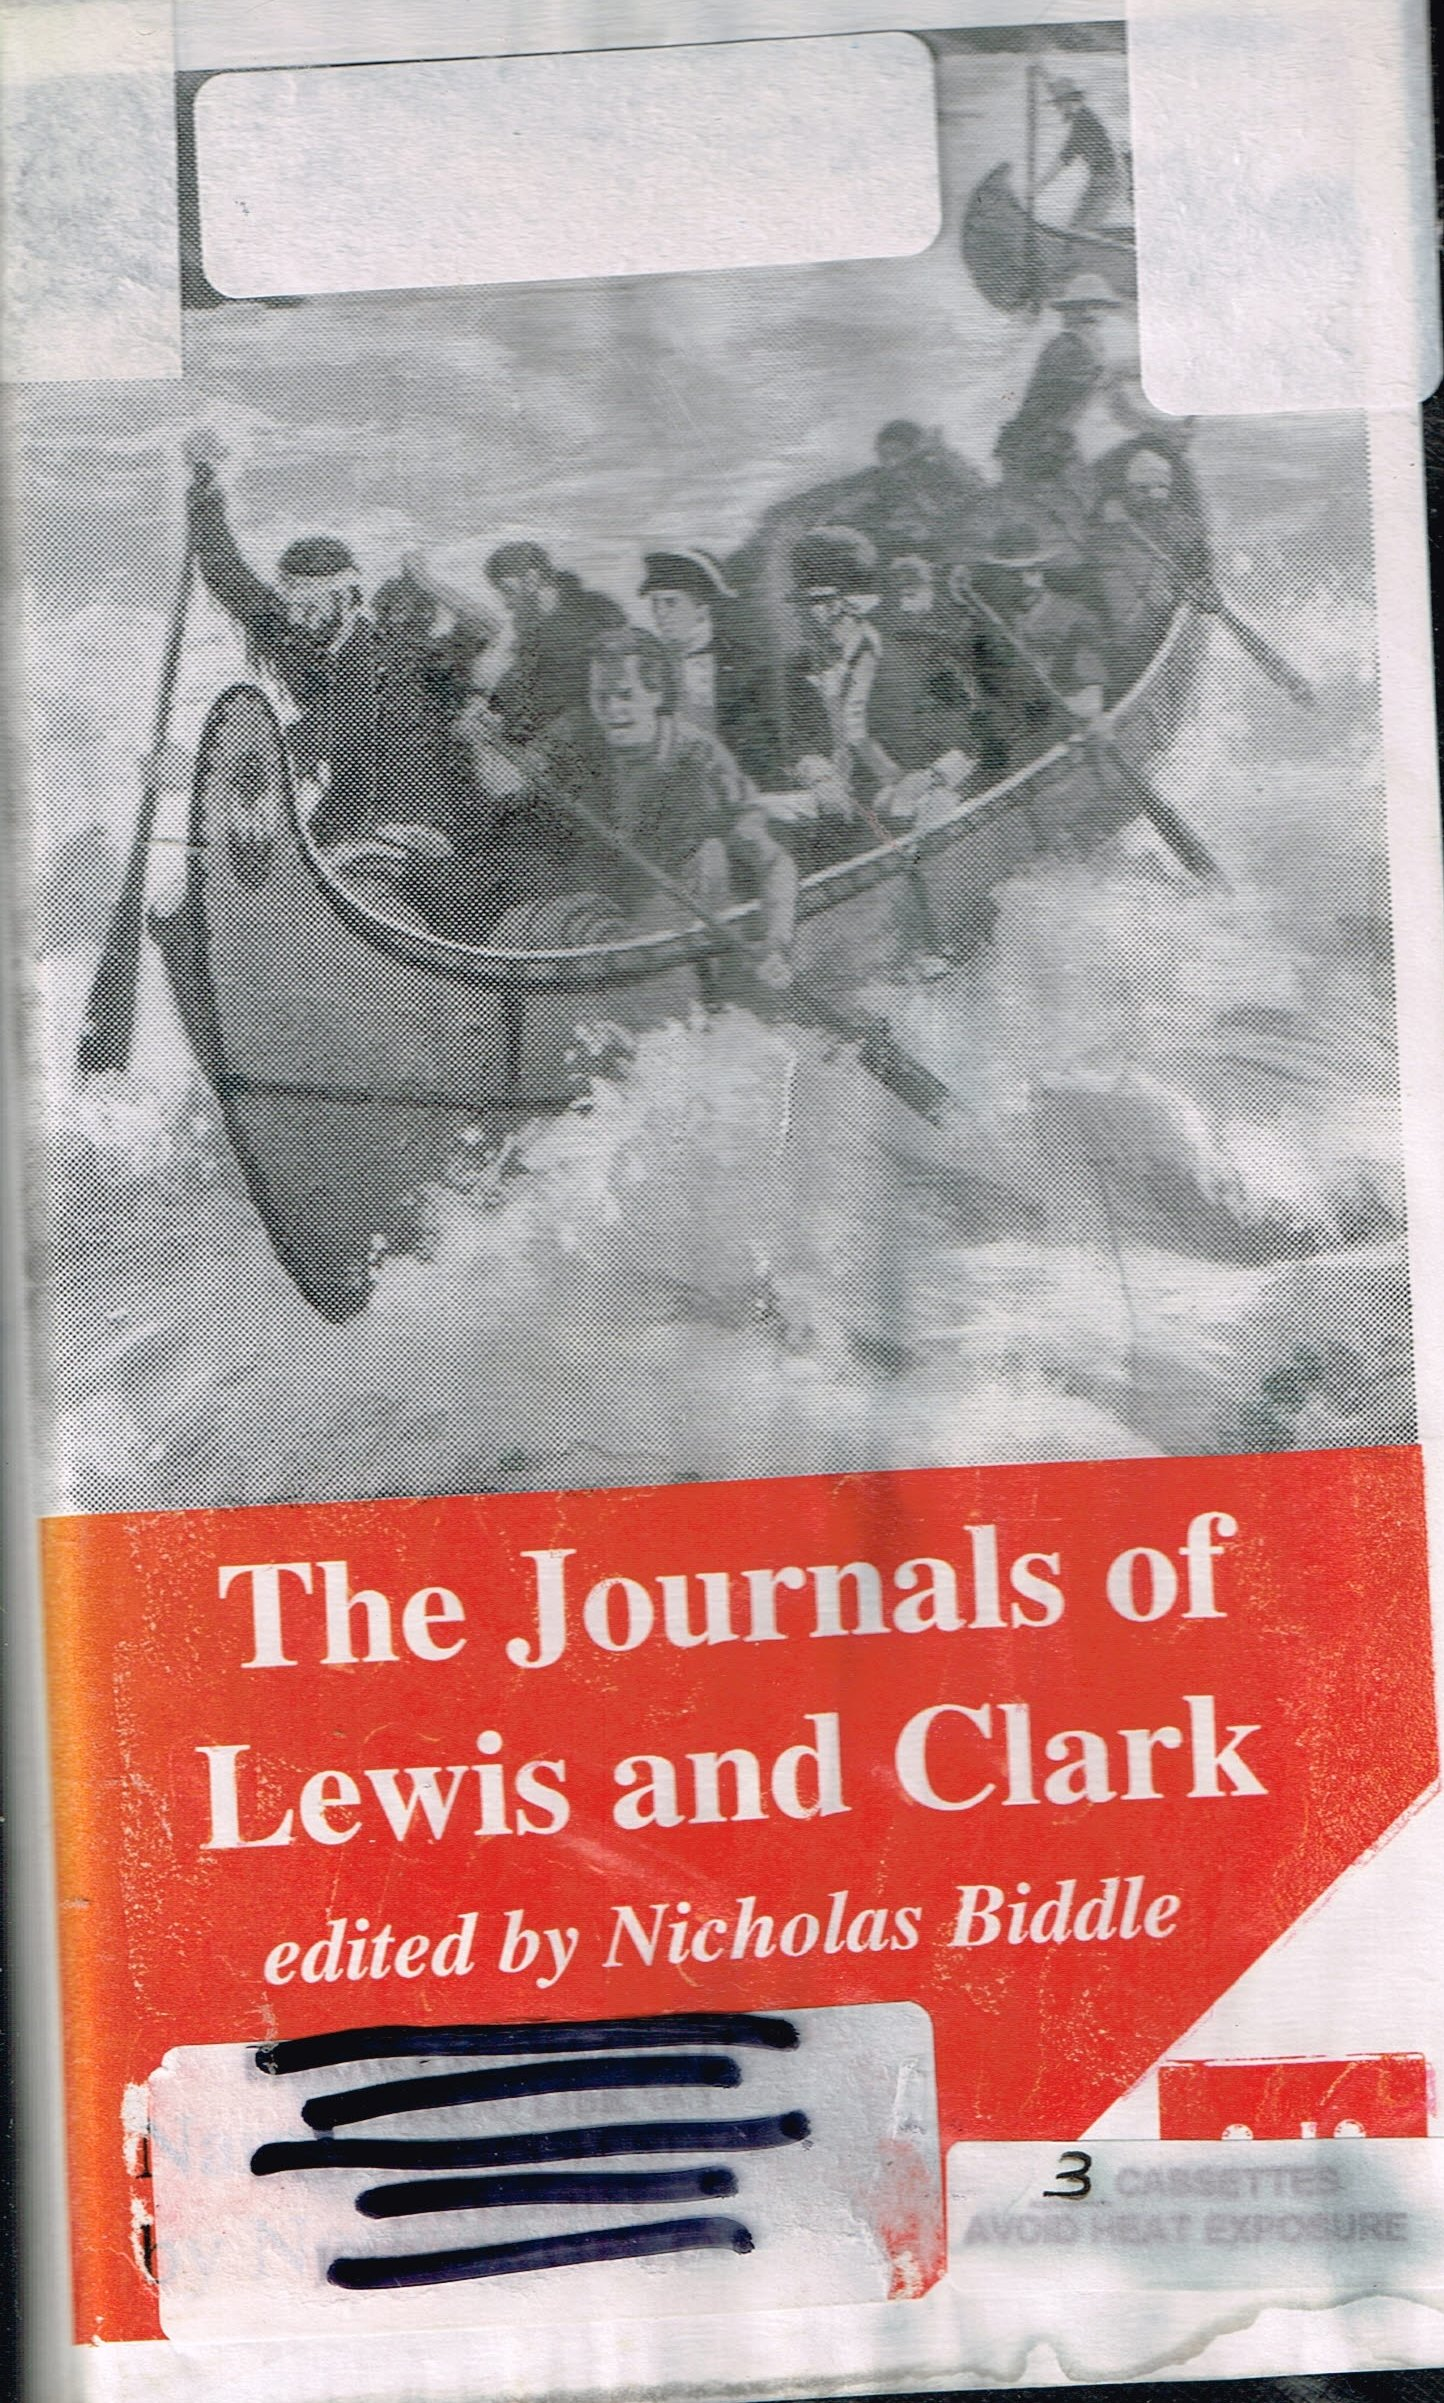 Journals of Lewis and Clark: Excerpts from the History of the Lewis and  Clark Expedition: Nicholas Biddle, Norman Dietz: 9781556906930: Amazon.com:  Books